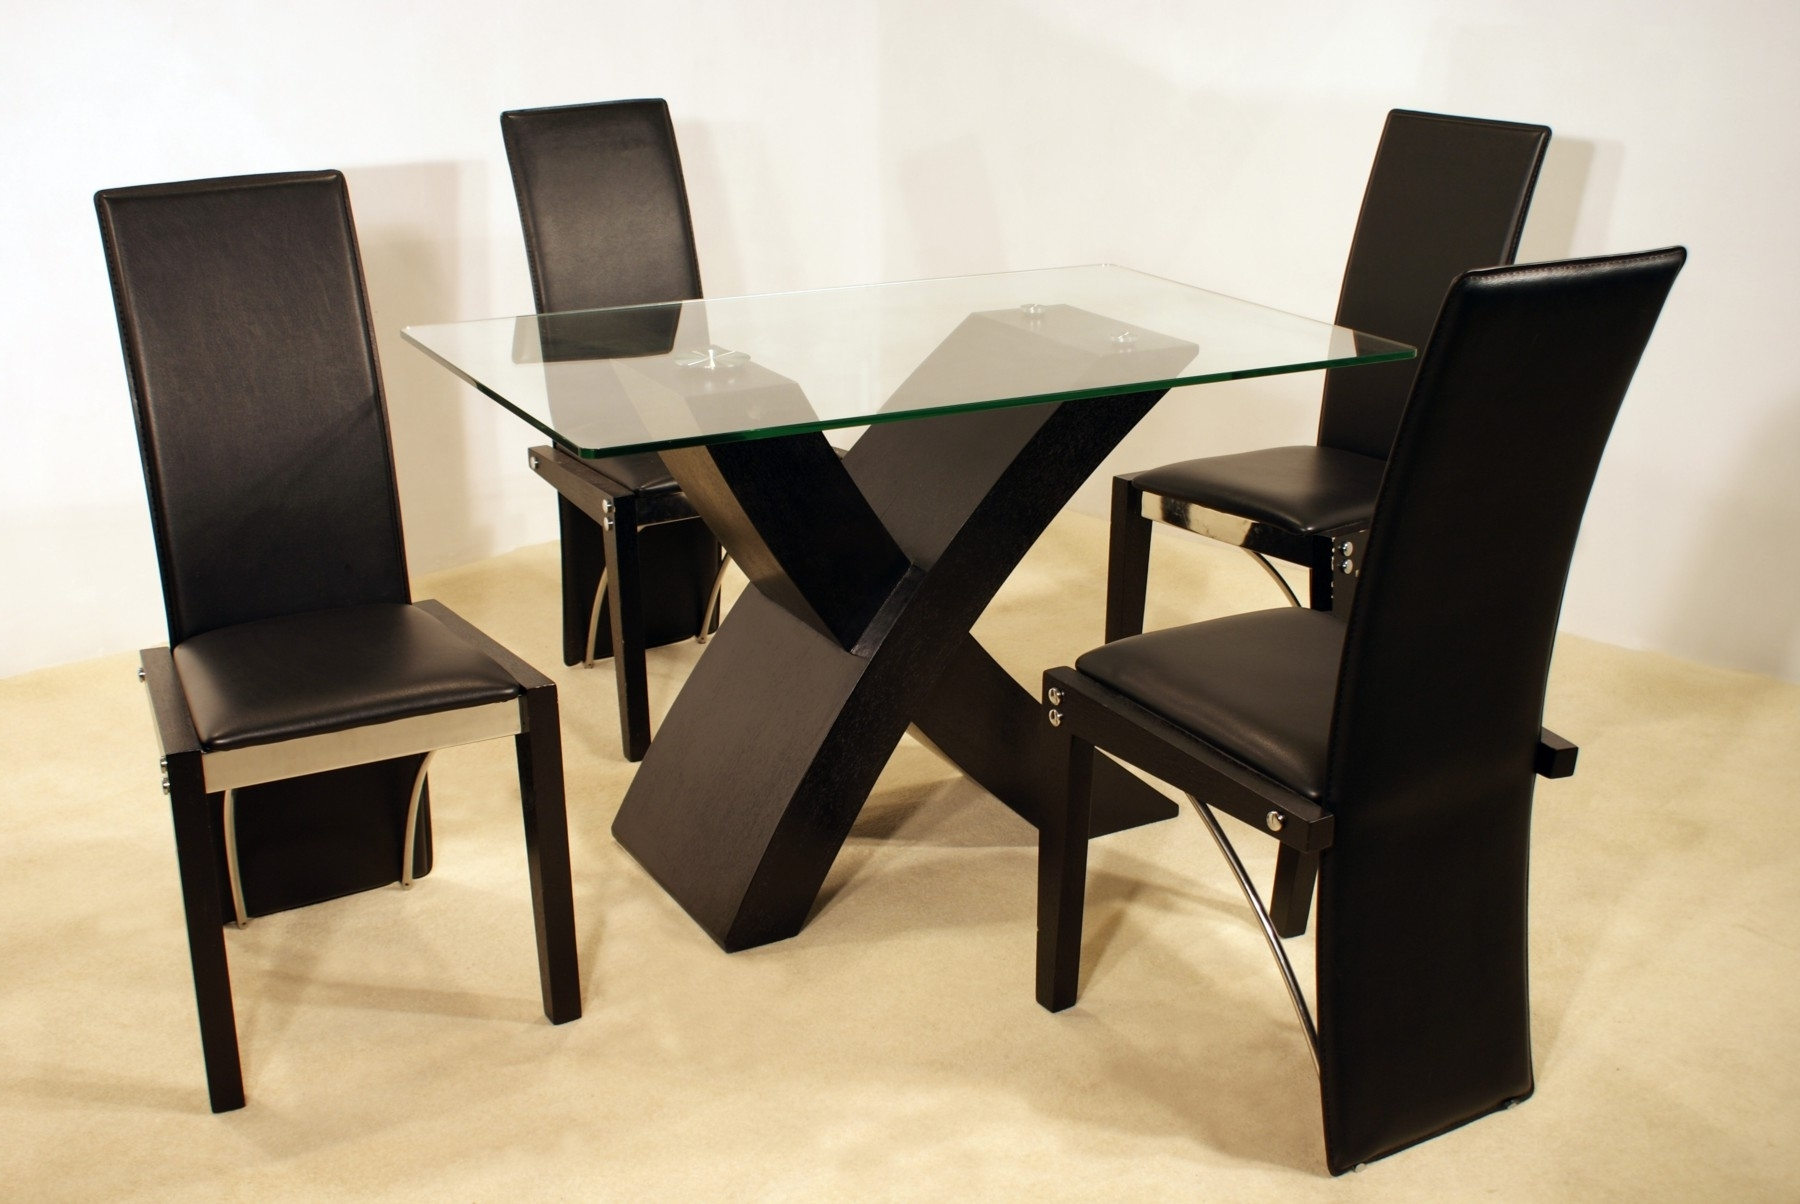 Modern Square Dining Tables For 4 From Glass Material Of Amazing In Newest Square Black Glass Dining Tables (View 23 of 25)